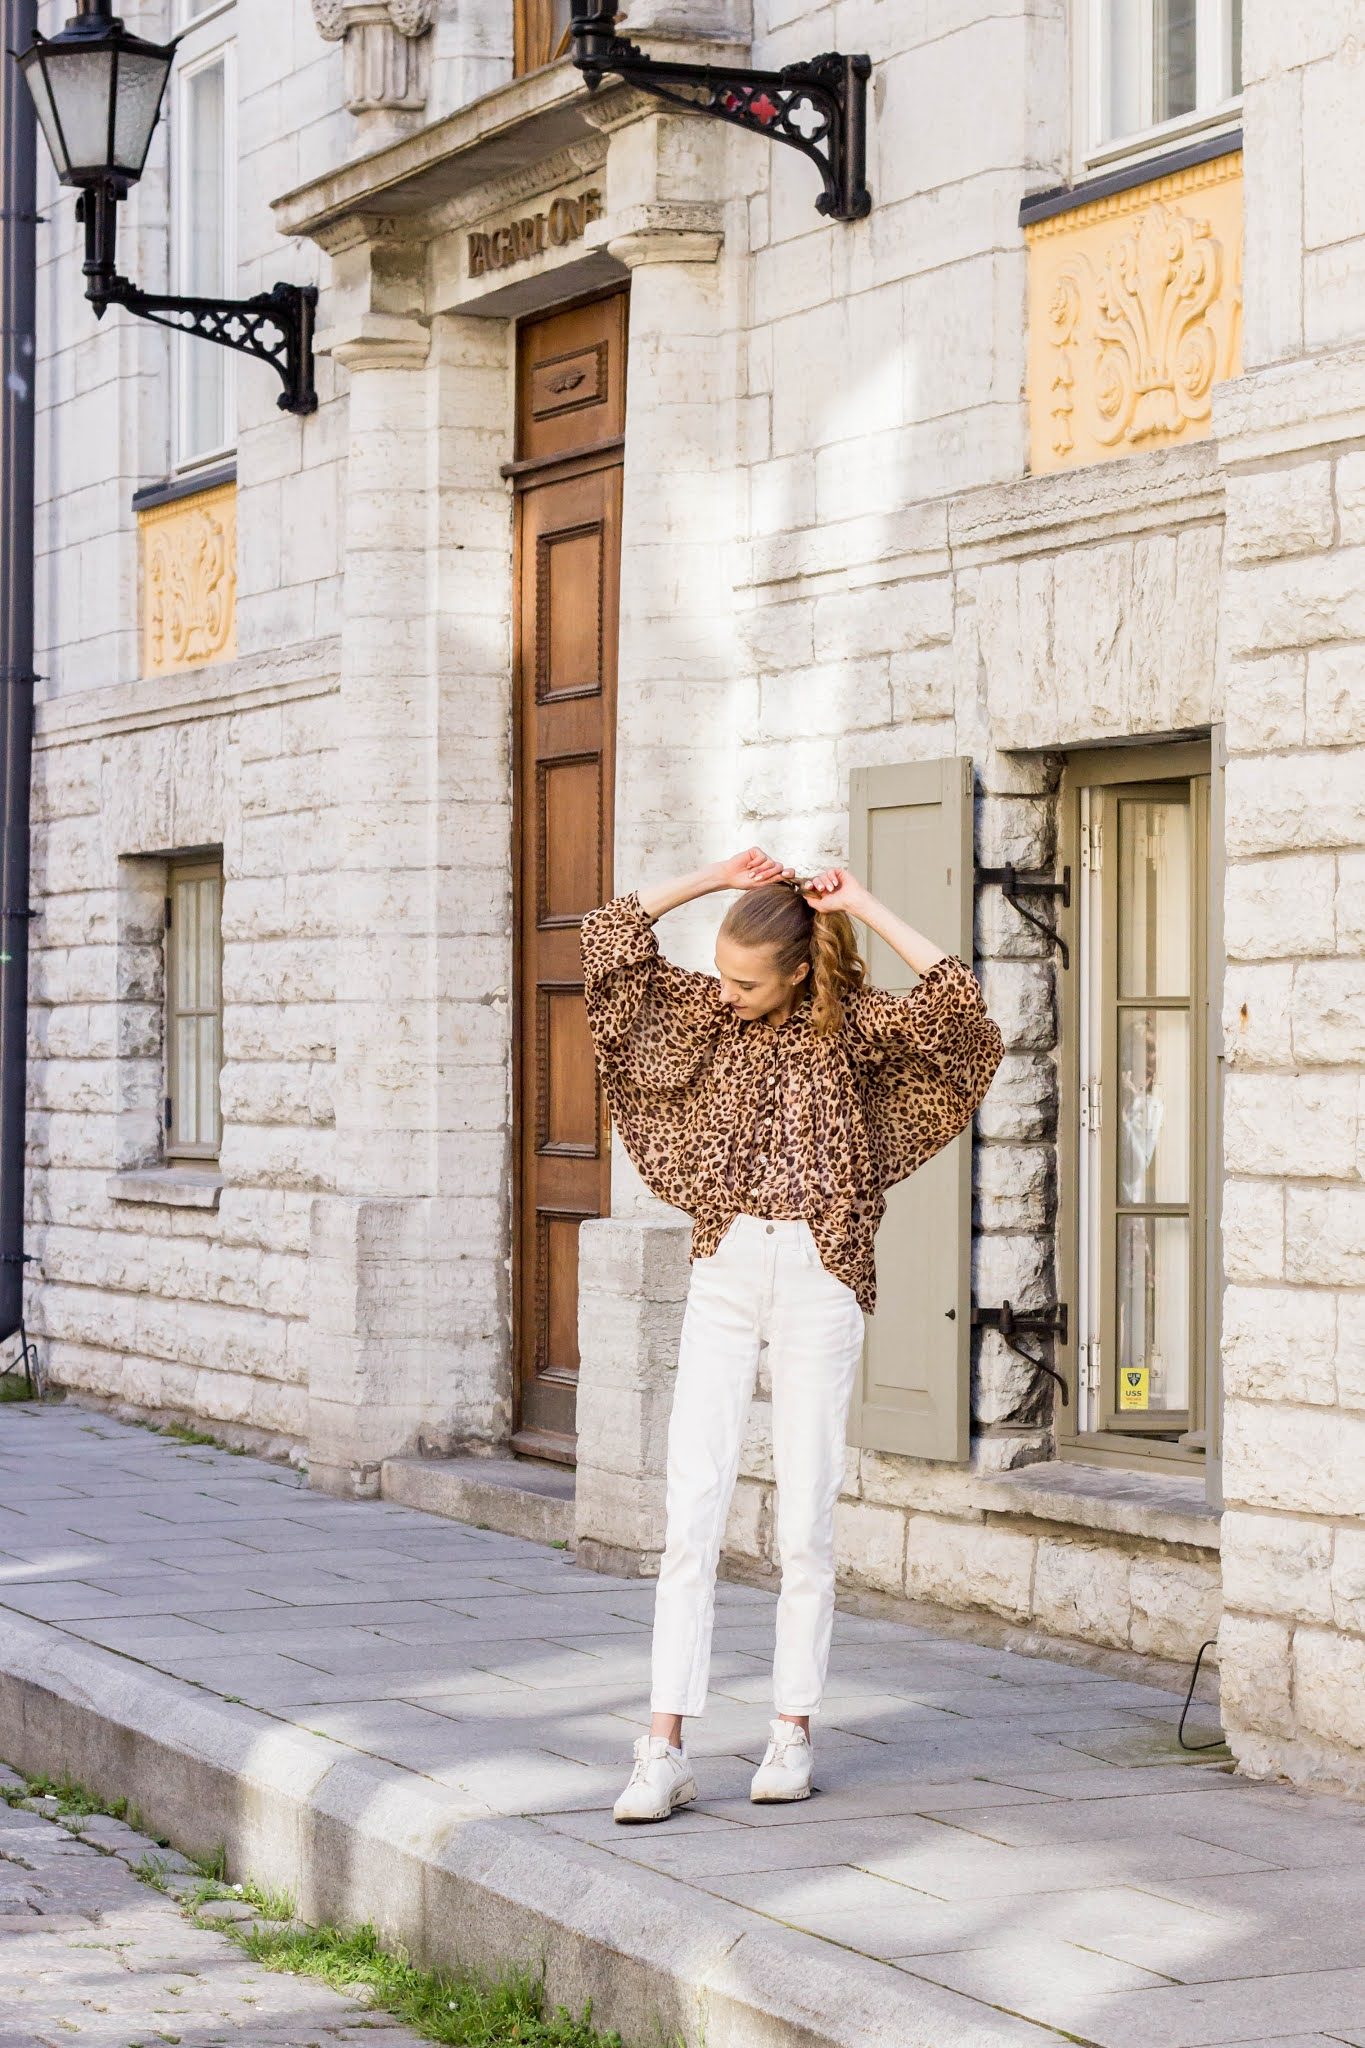 Autumn outfit inspiration with leopard print - Syysmuoti, asuinspiraatio, leopardikuvio